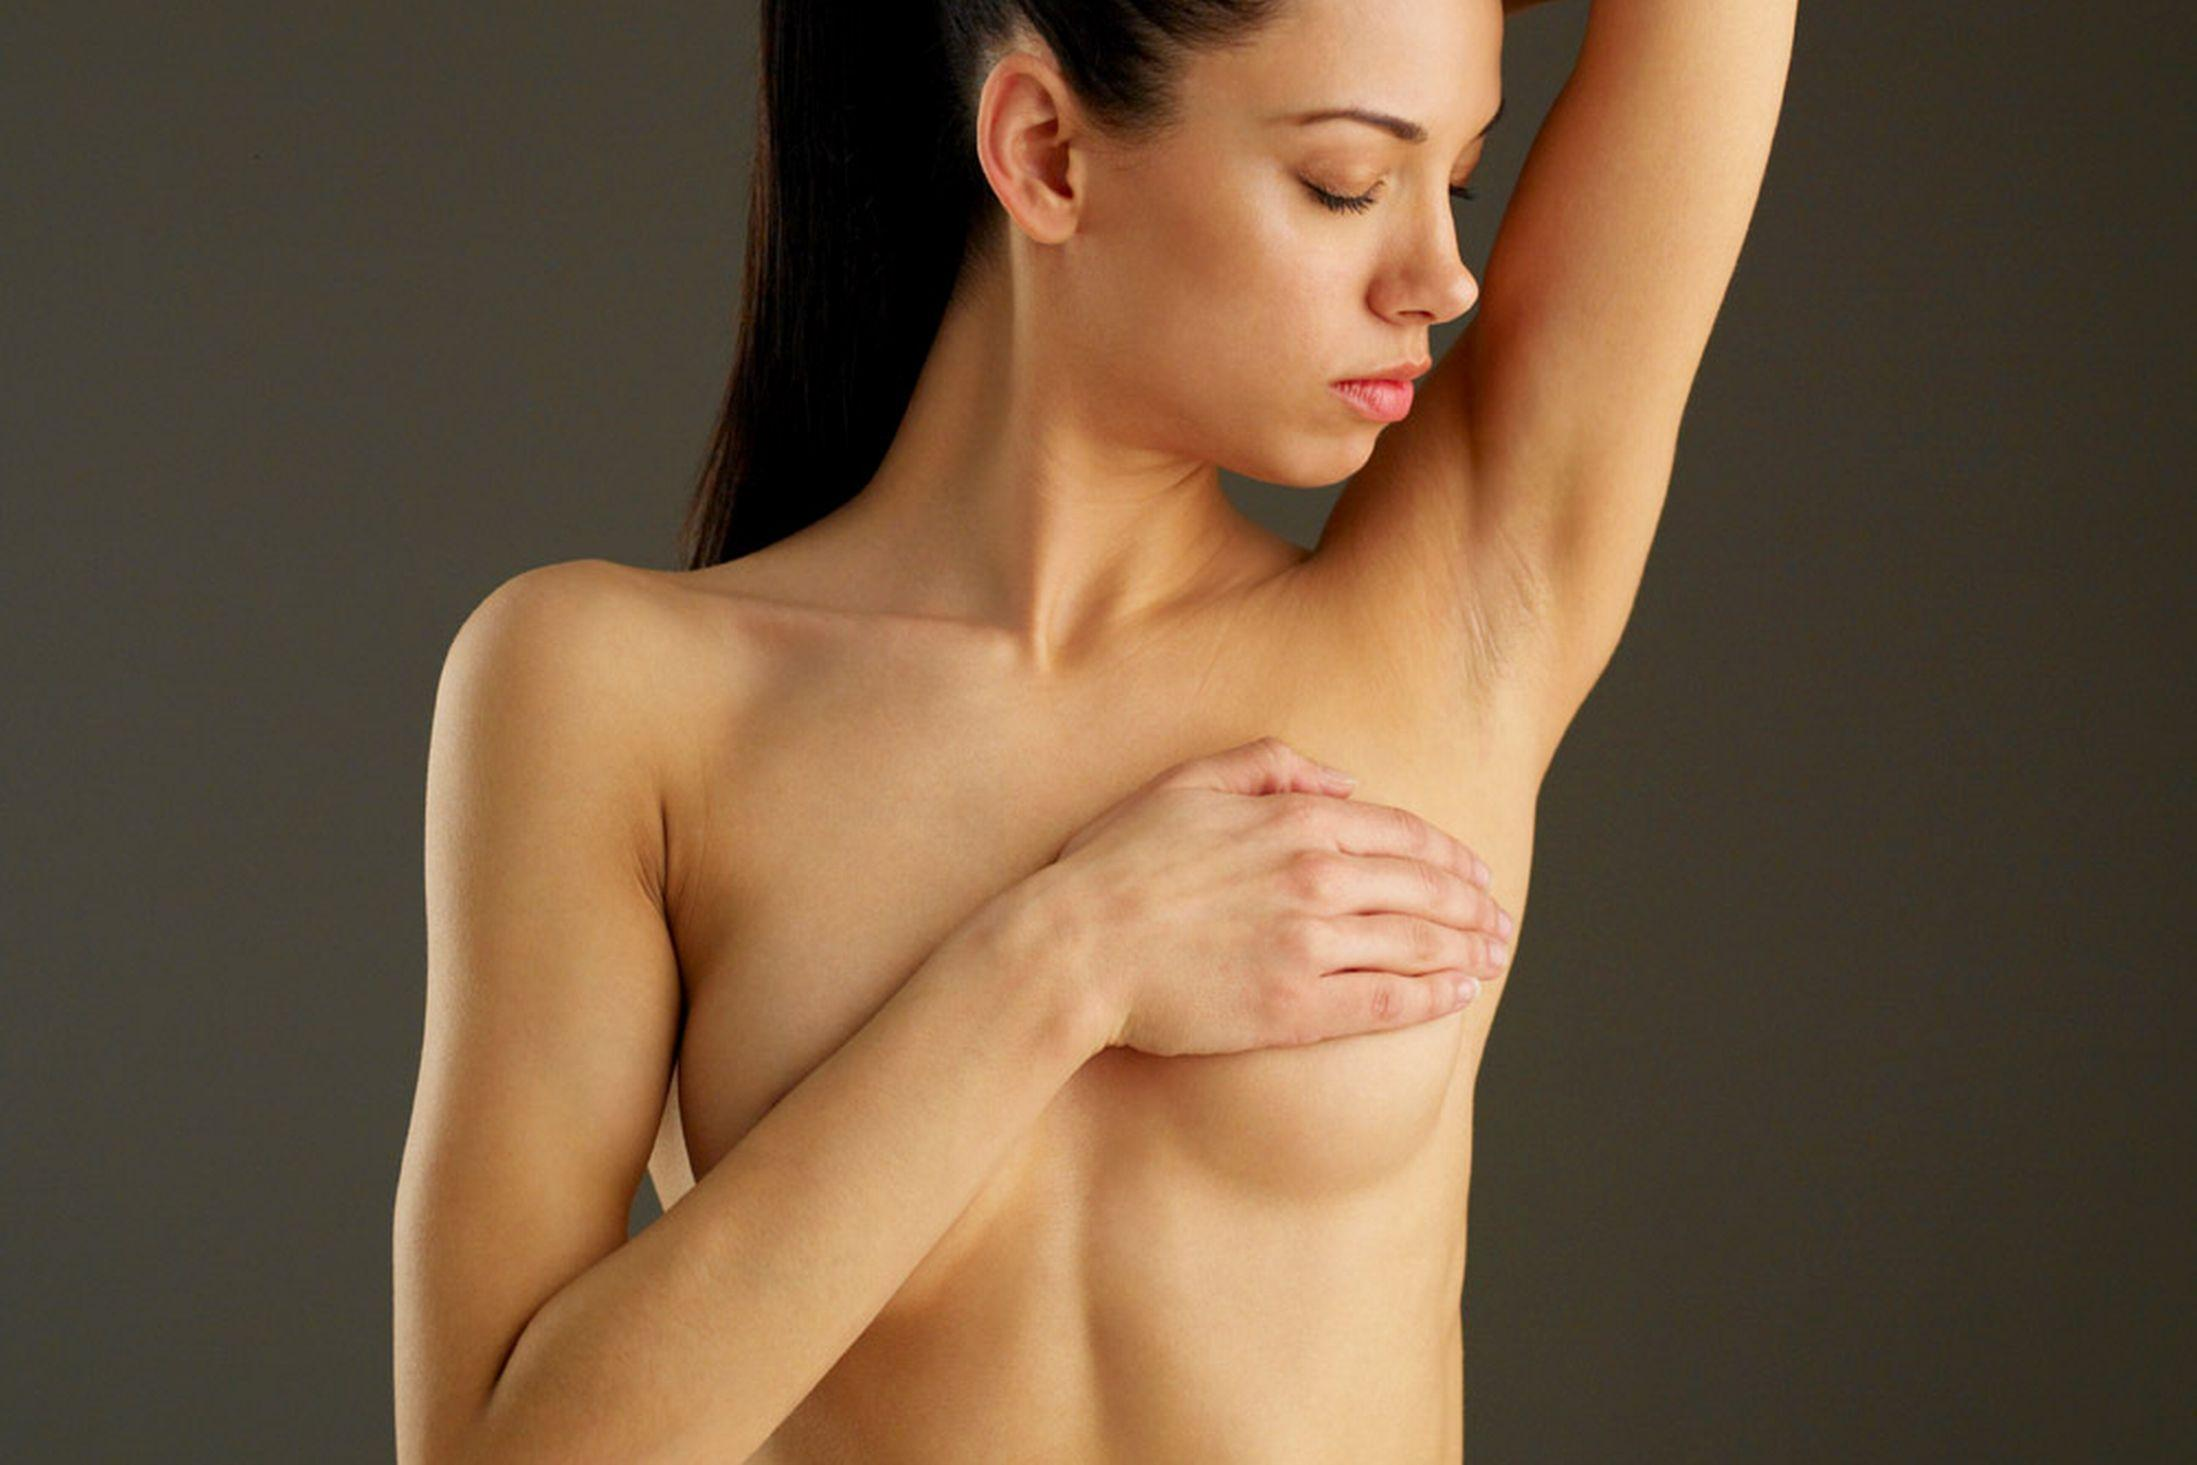 woman-covering-breast-with-hand-1730812